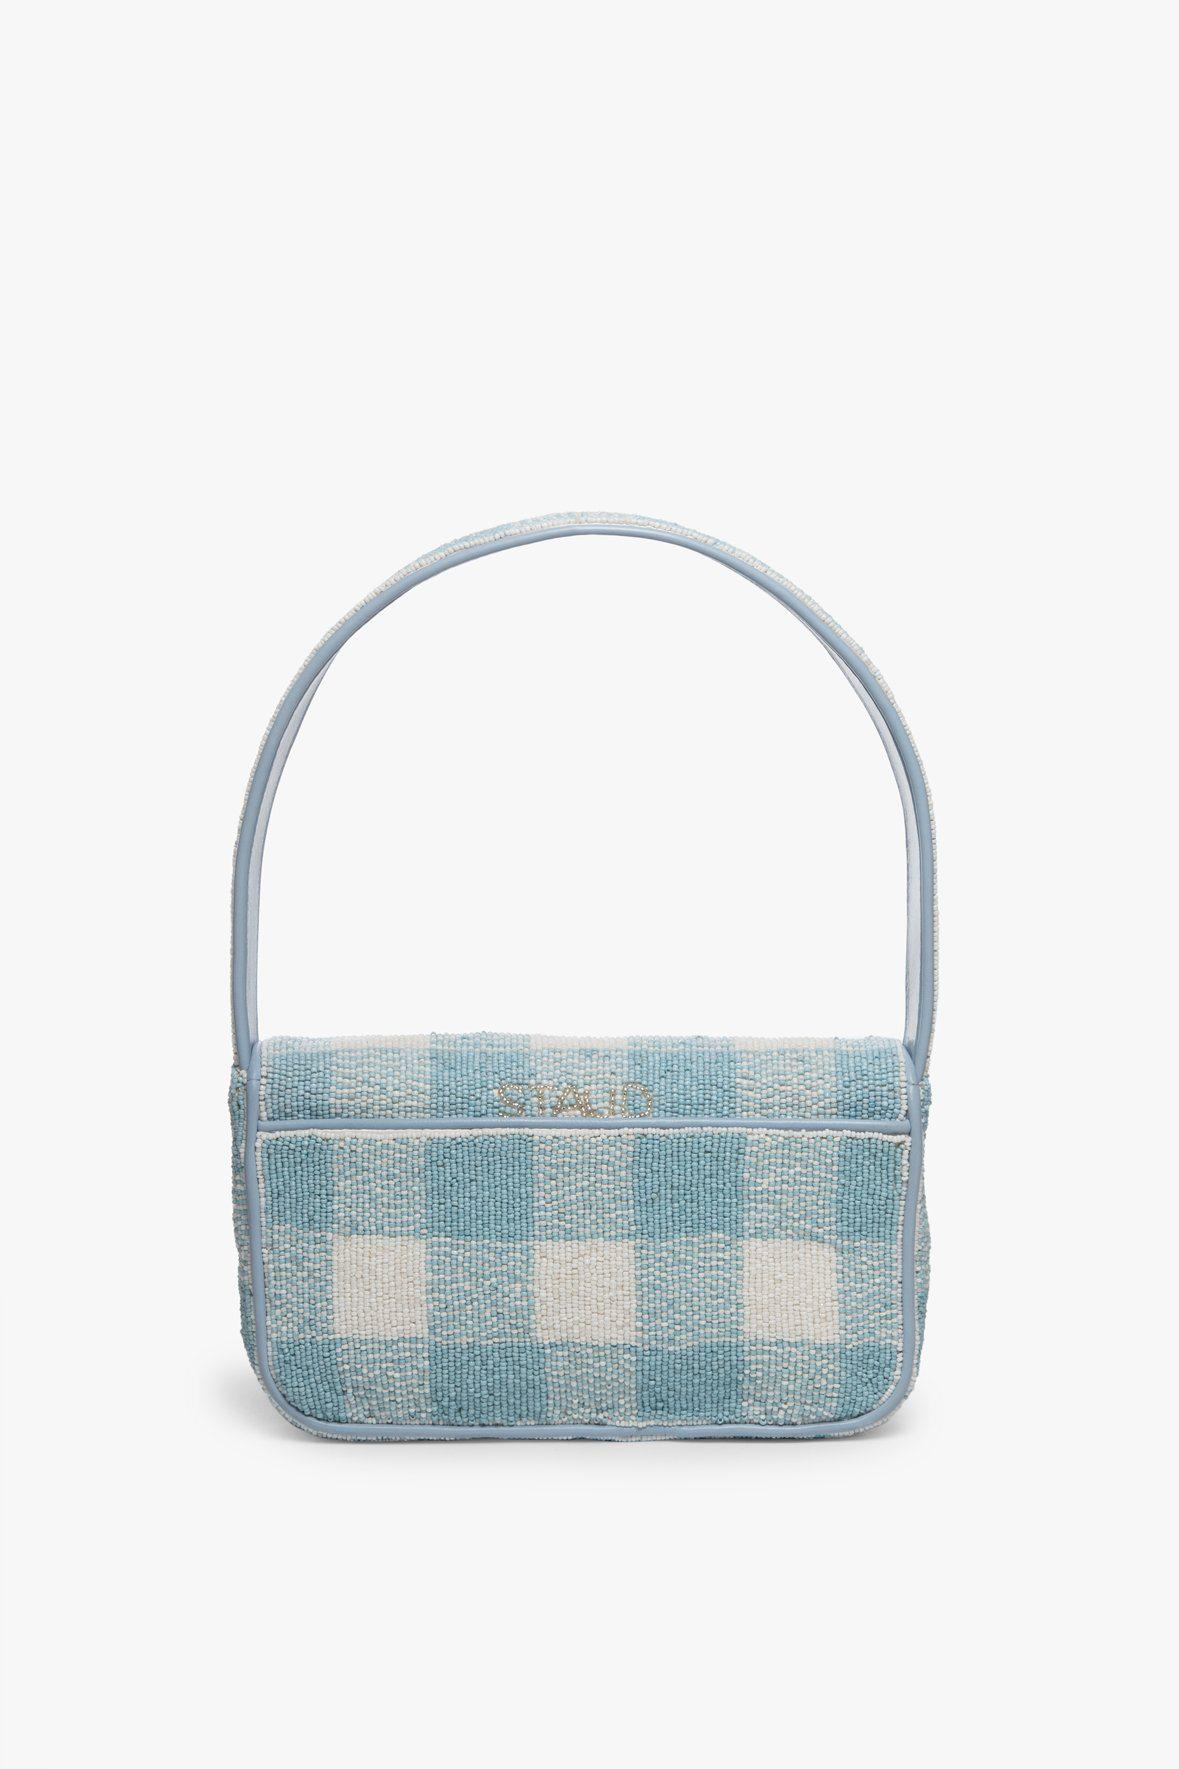 TOMMY BEADED BAG   ARCTIC BLUE WHITE 4